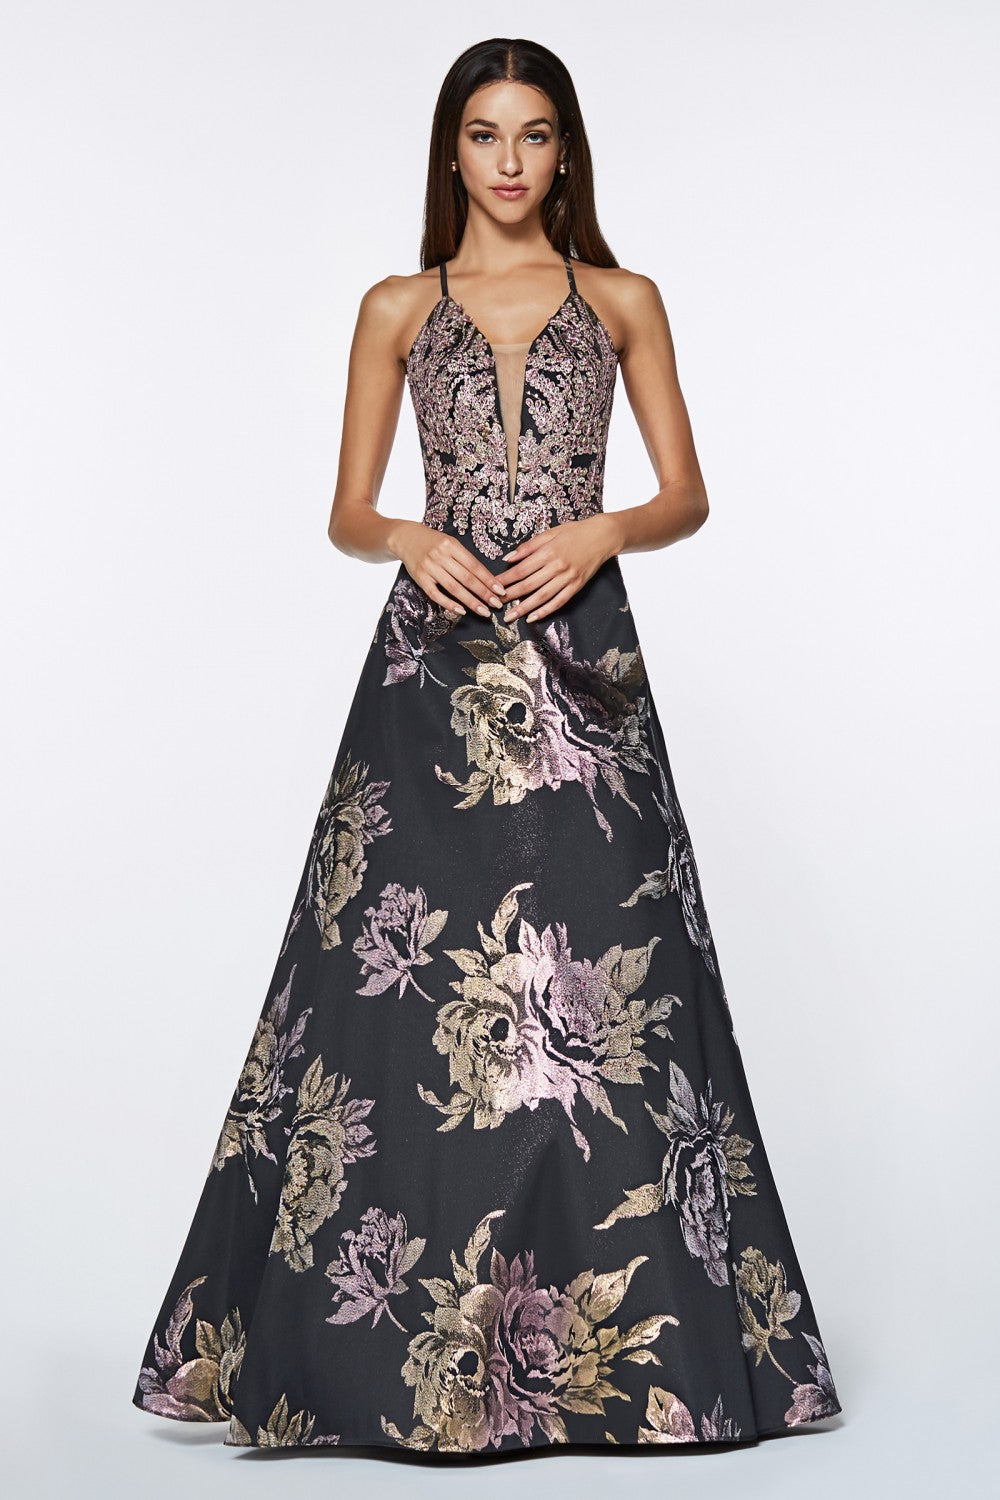 A-Line Metallic Gown With Floral Print And Criss Cross Back